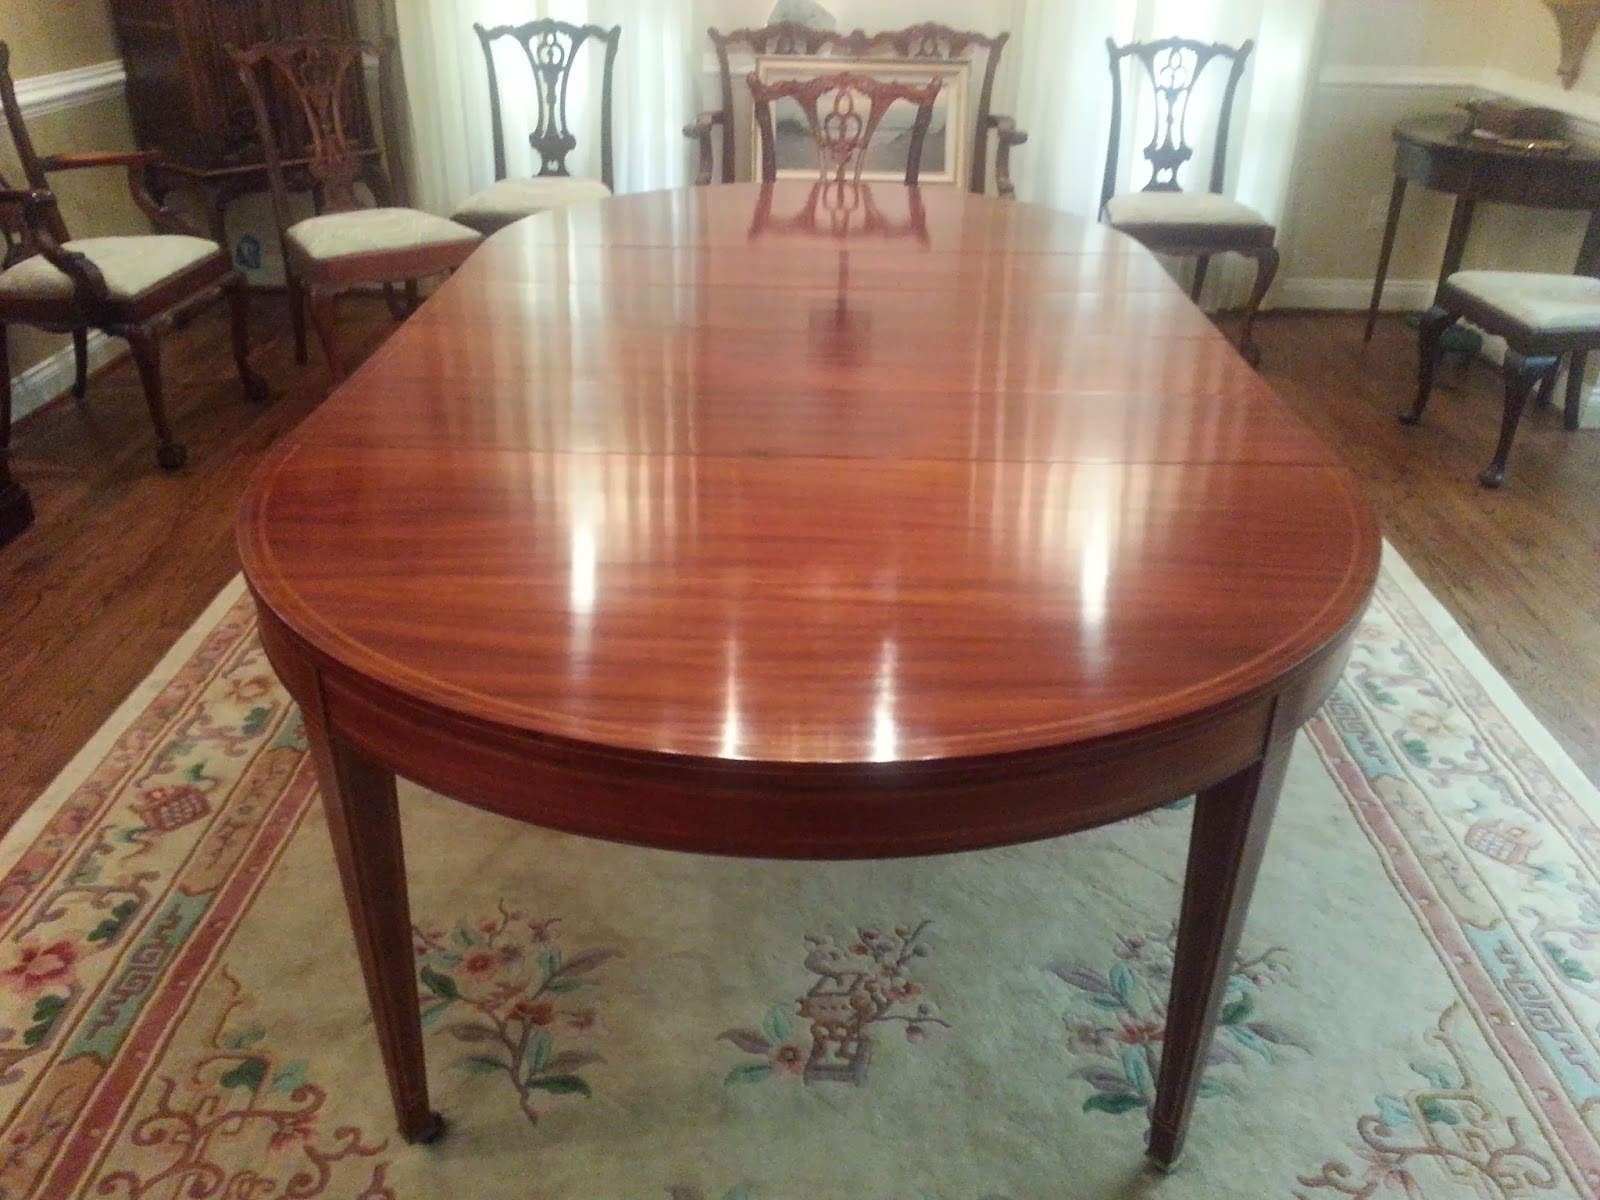 Mahogany Dining Room Table with Tulip Wood Banding  Ca  1920. John Mark Power  Antiques Conservator  Mahogany Dining Room Table